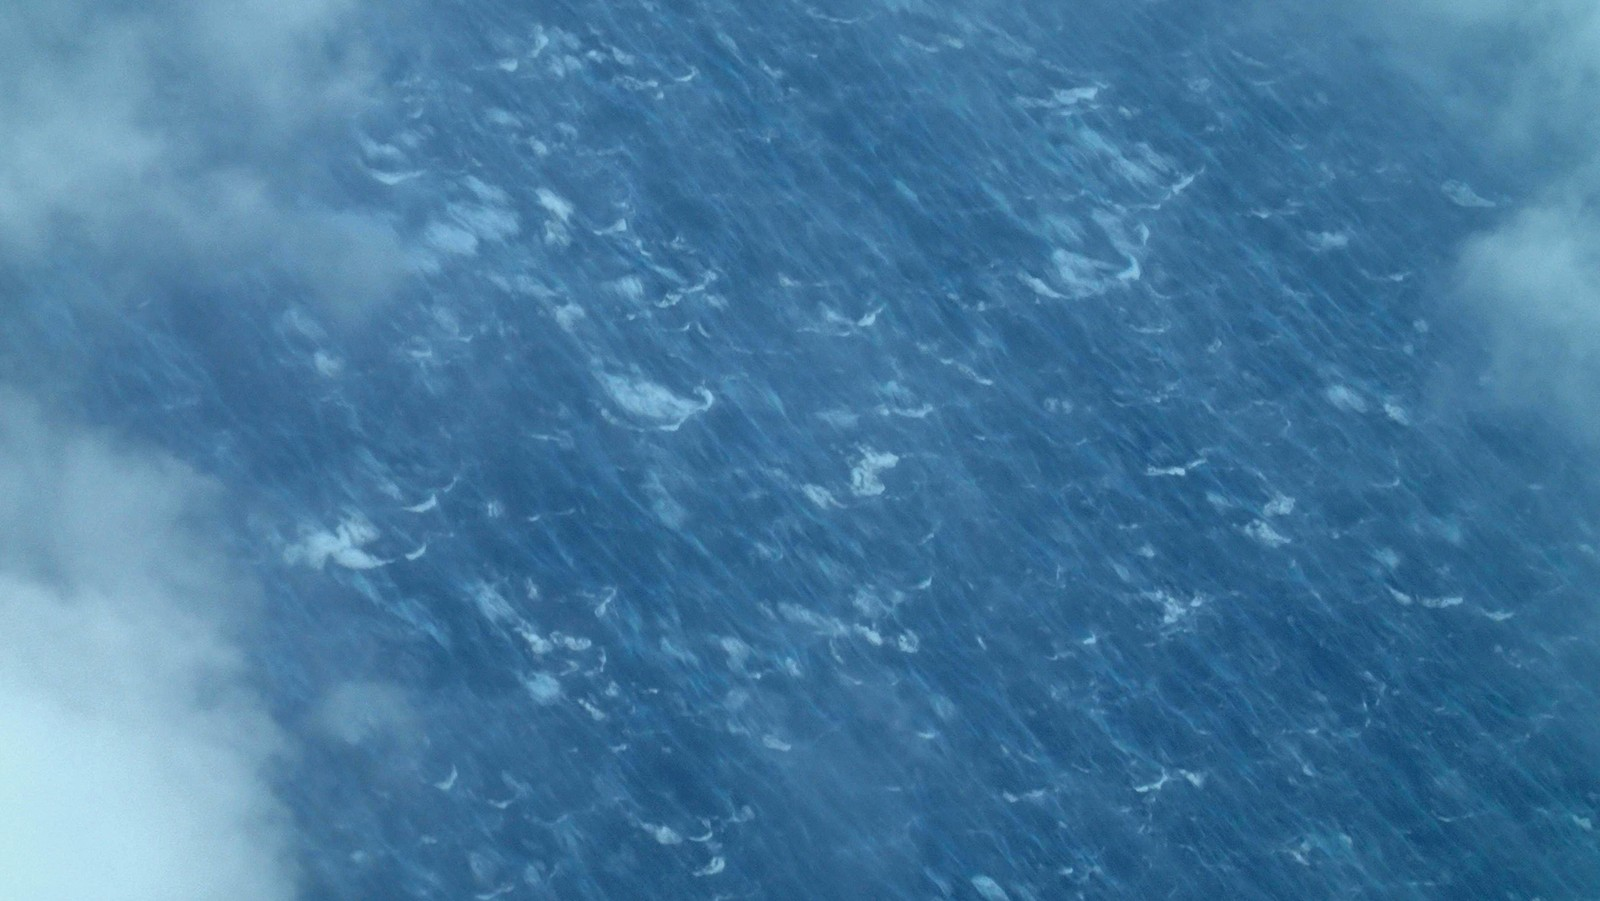 Wind streaks and whitecaps on the ocean surface from Hurricane Edouard's 65 kt winds. Image credit: NOAA